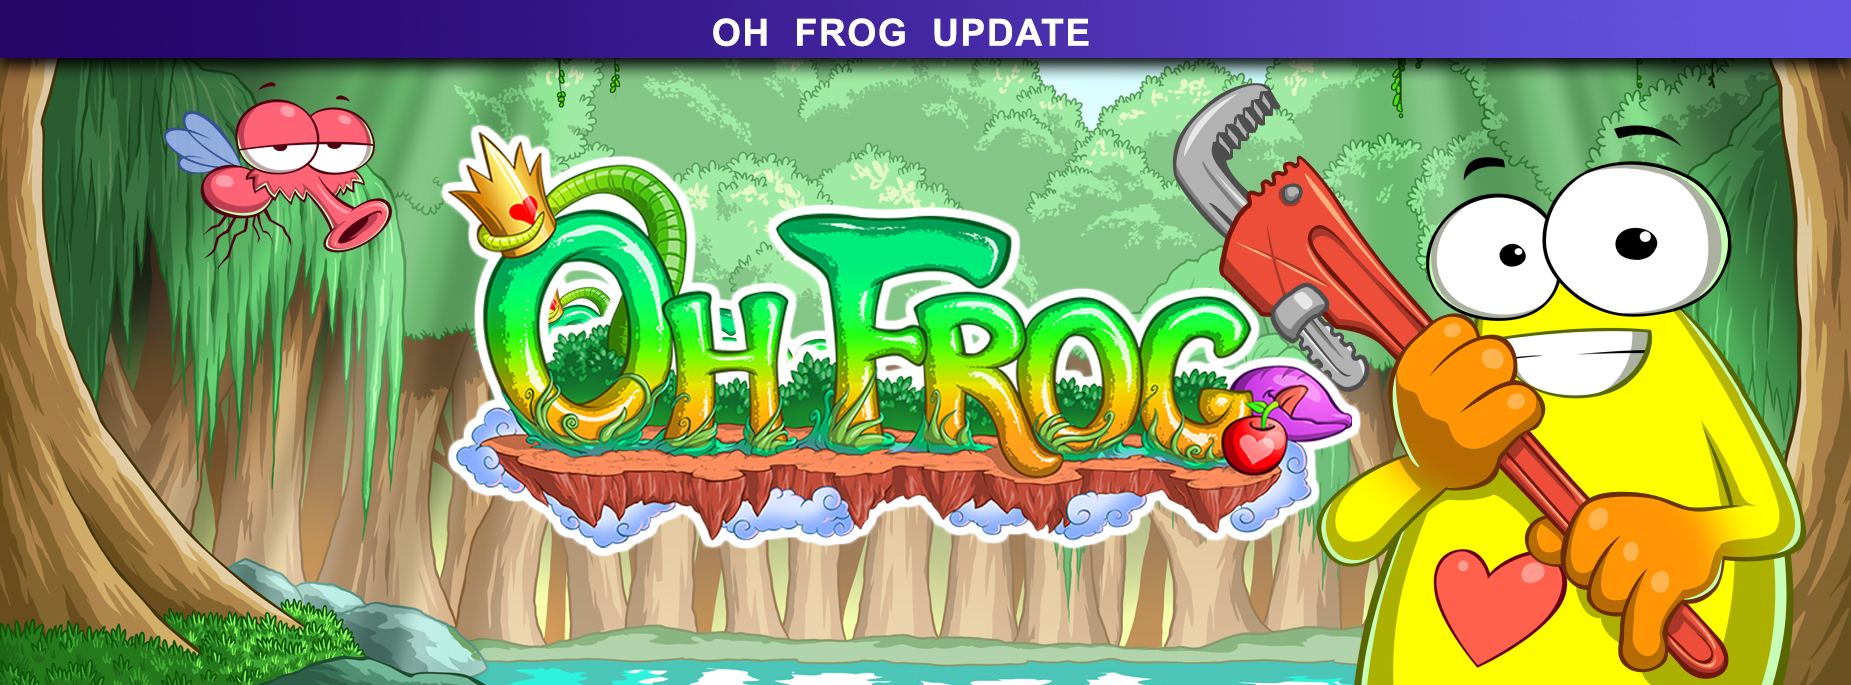 Oh Frog Update